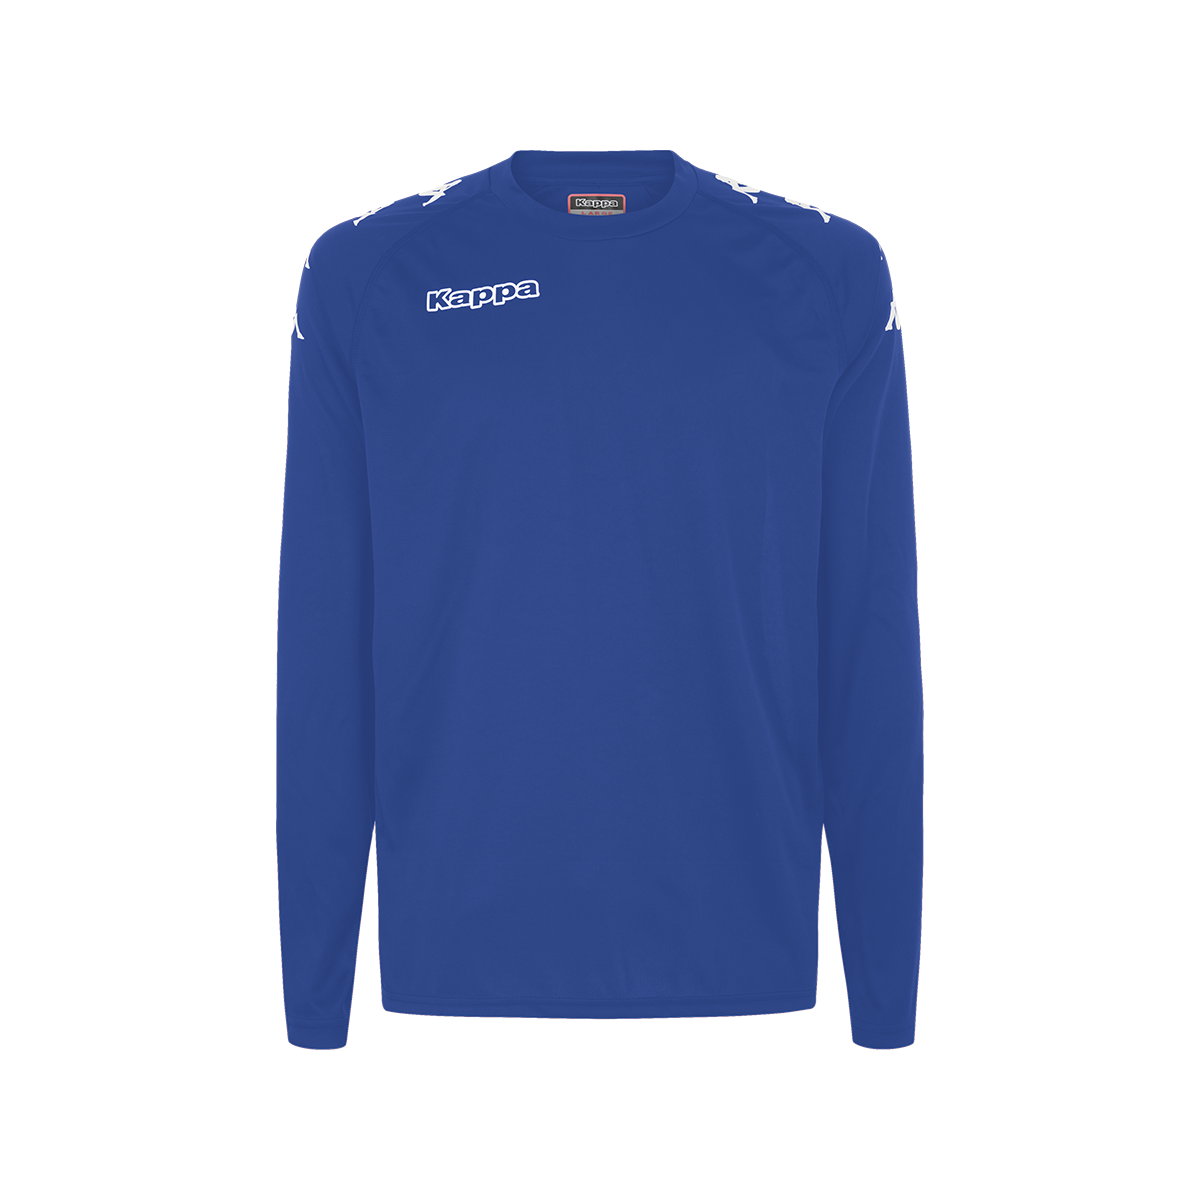 Kappa Cinanda Match Shirt LS - Royal Blue